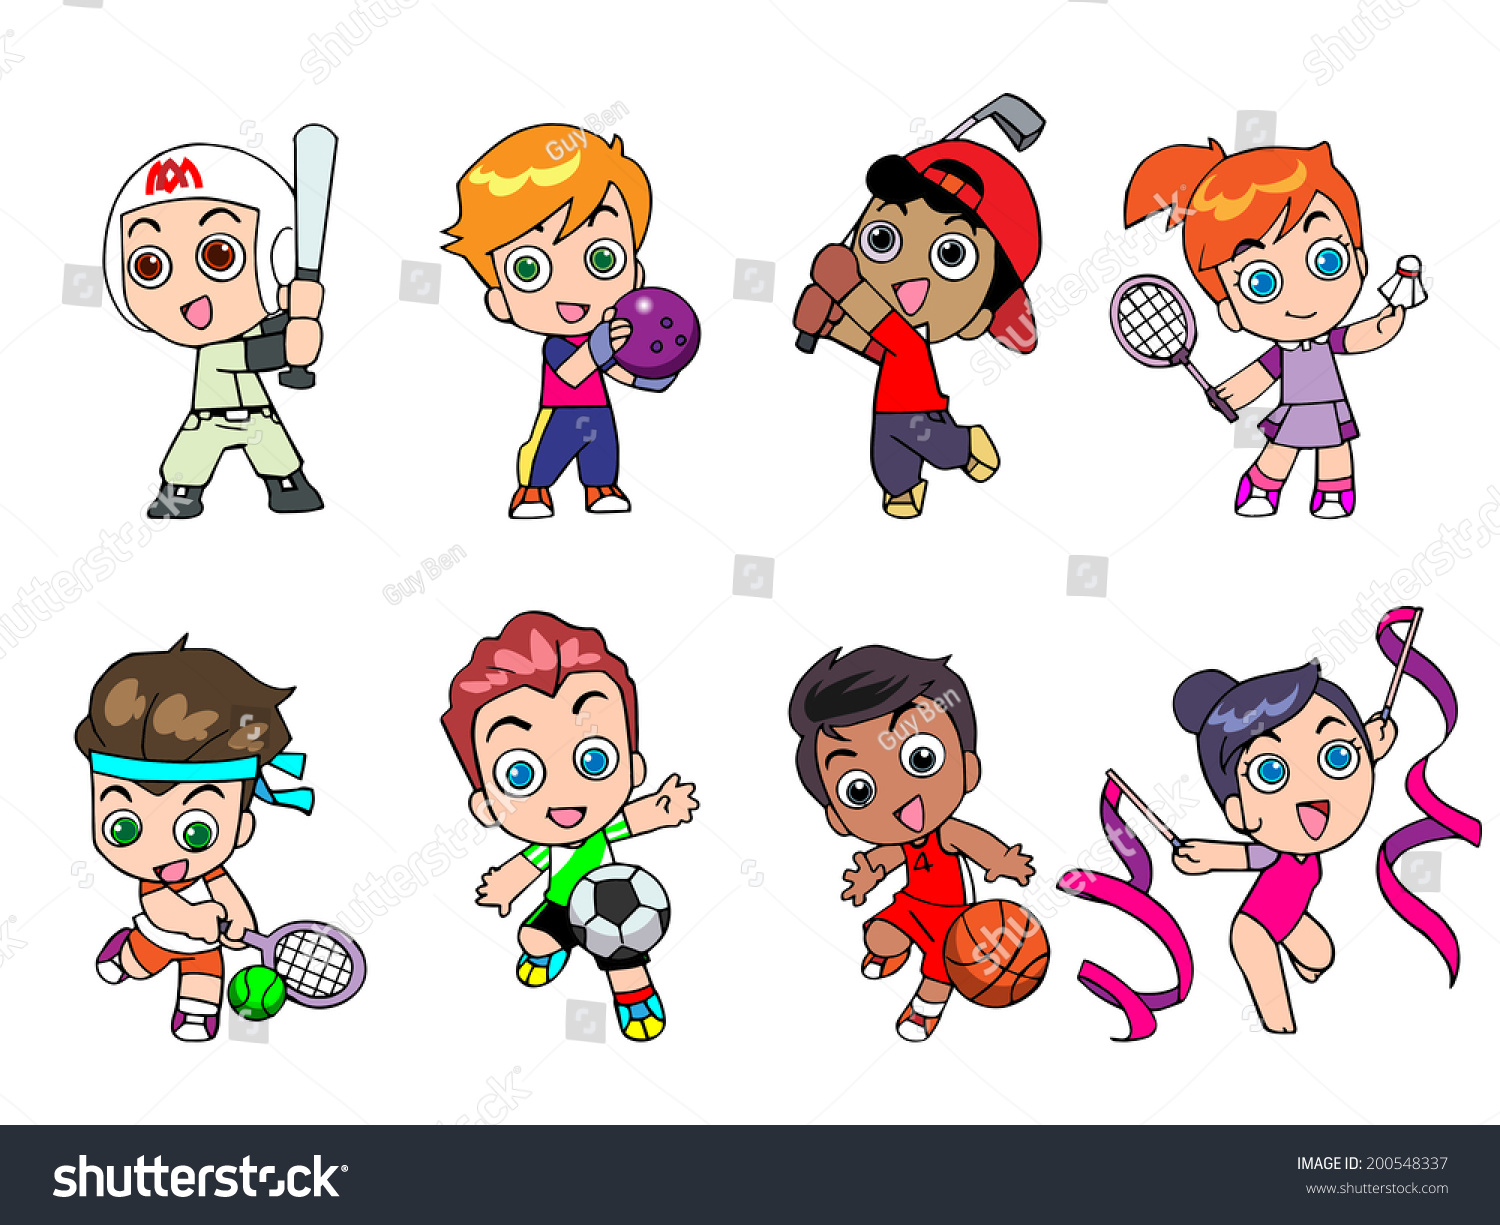 Cute Character Design Illustrator : Illustration character design athlete cute cartoon stock